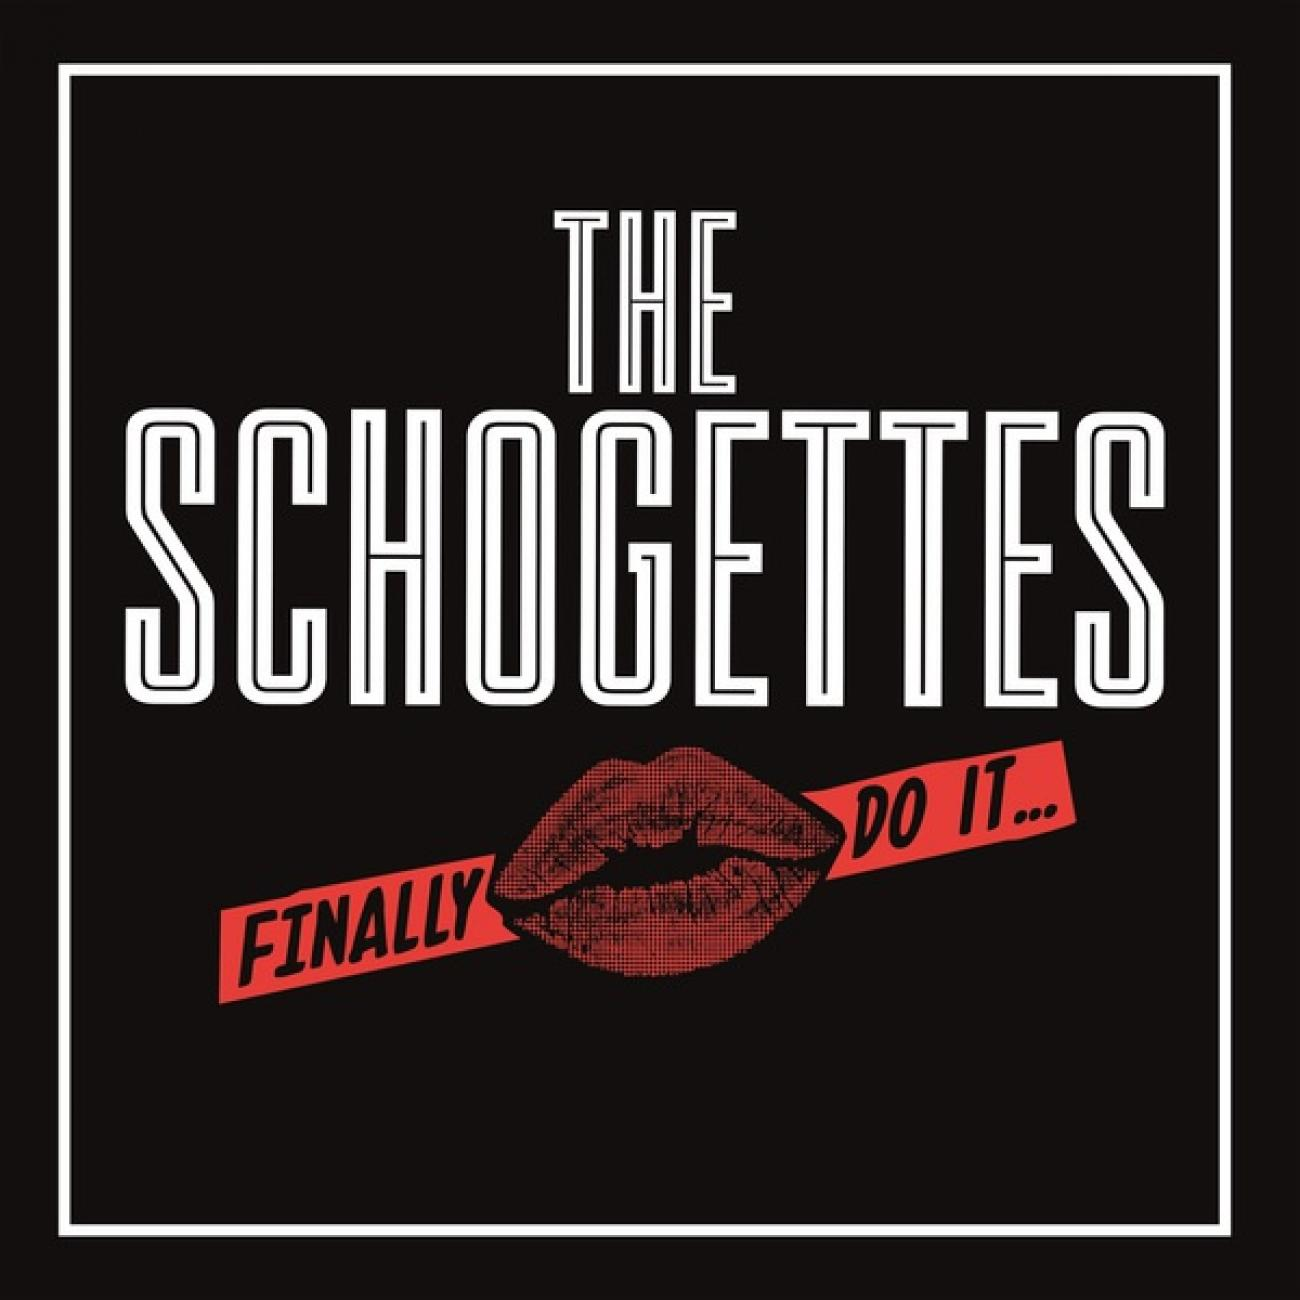 The Schogettes - Finally do it